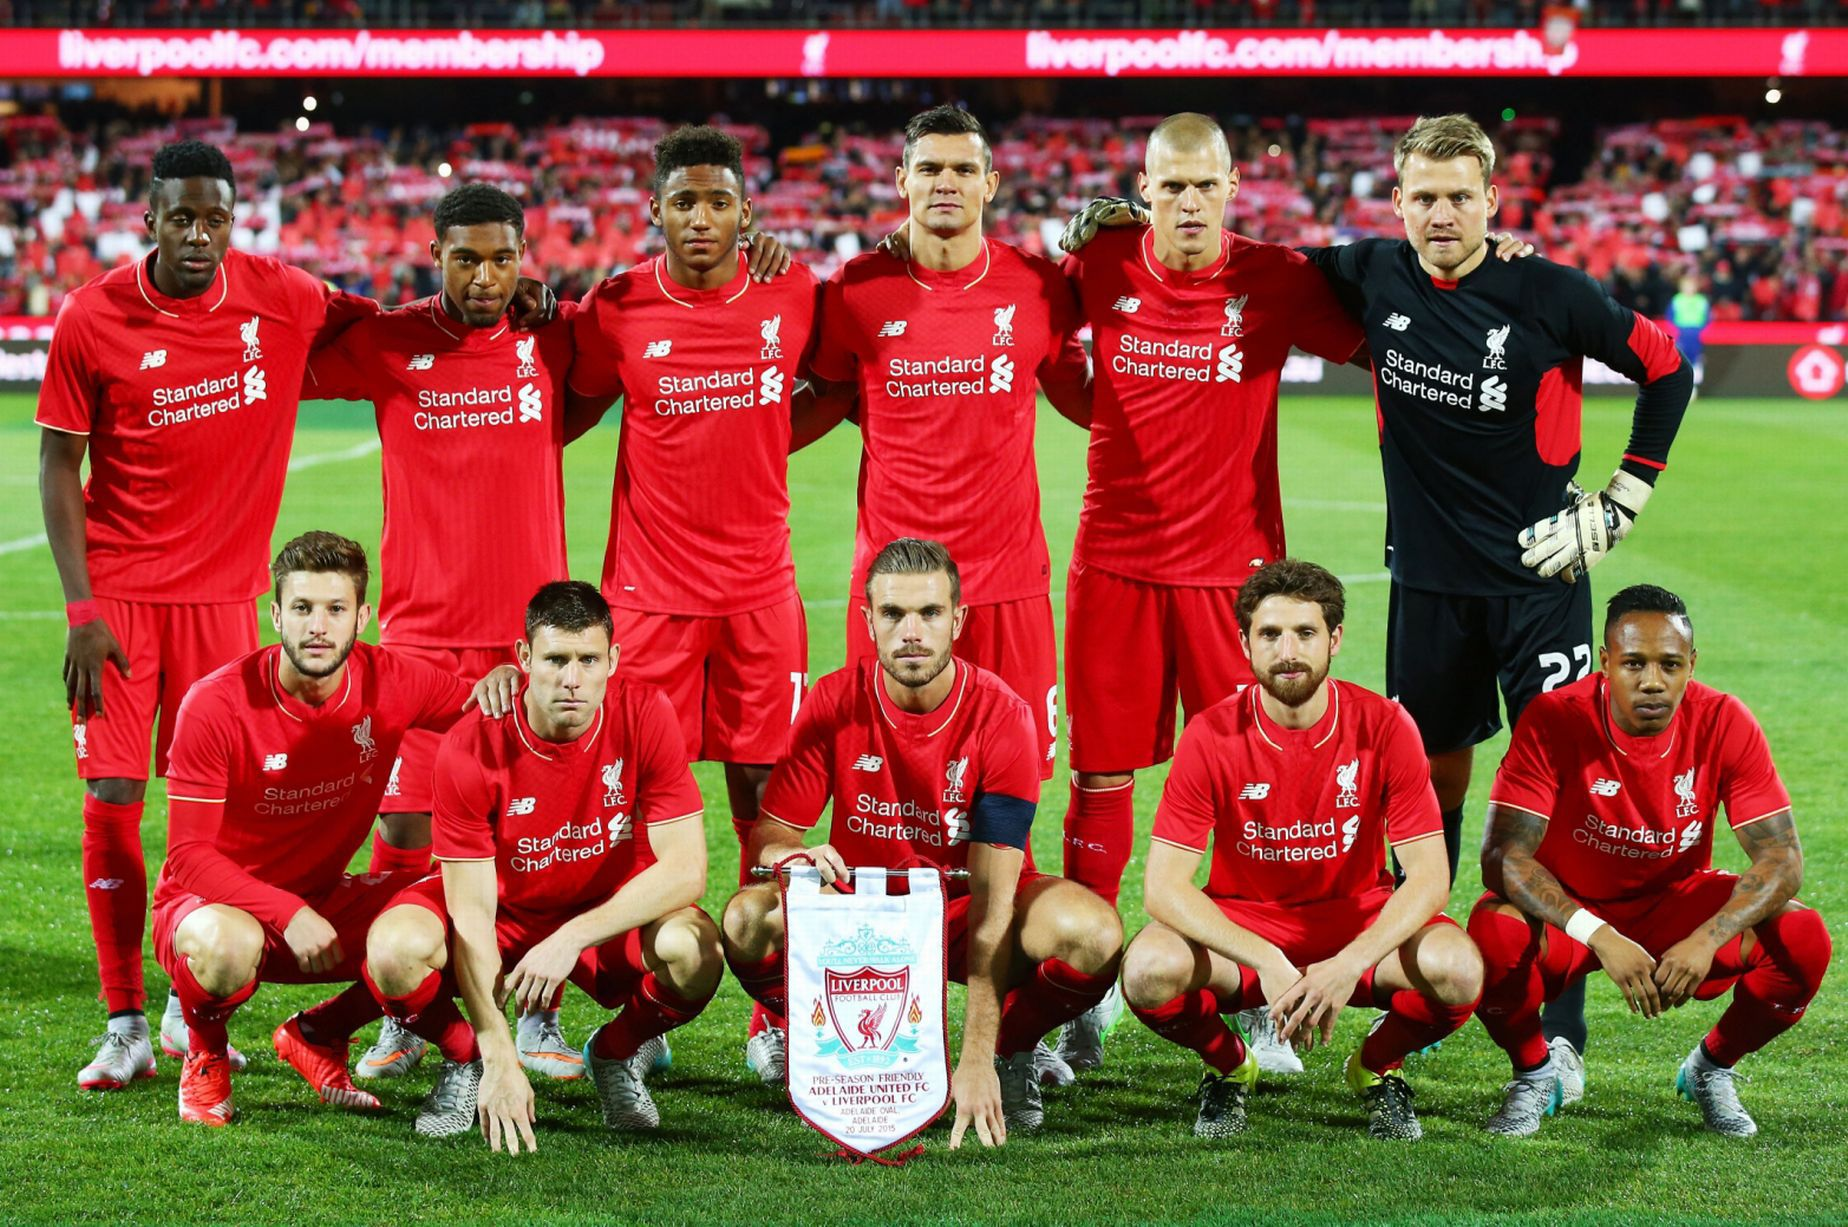 FC Liverpool Wallpapers Images Photos Pictures Backgrounds 1848x1227